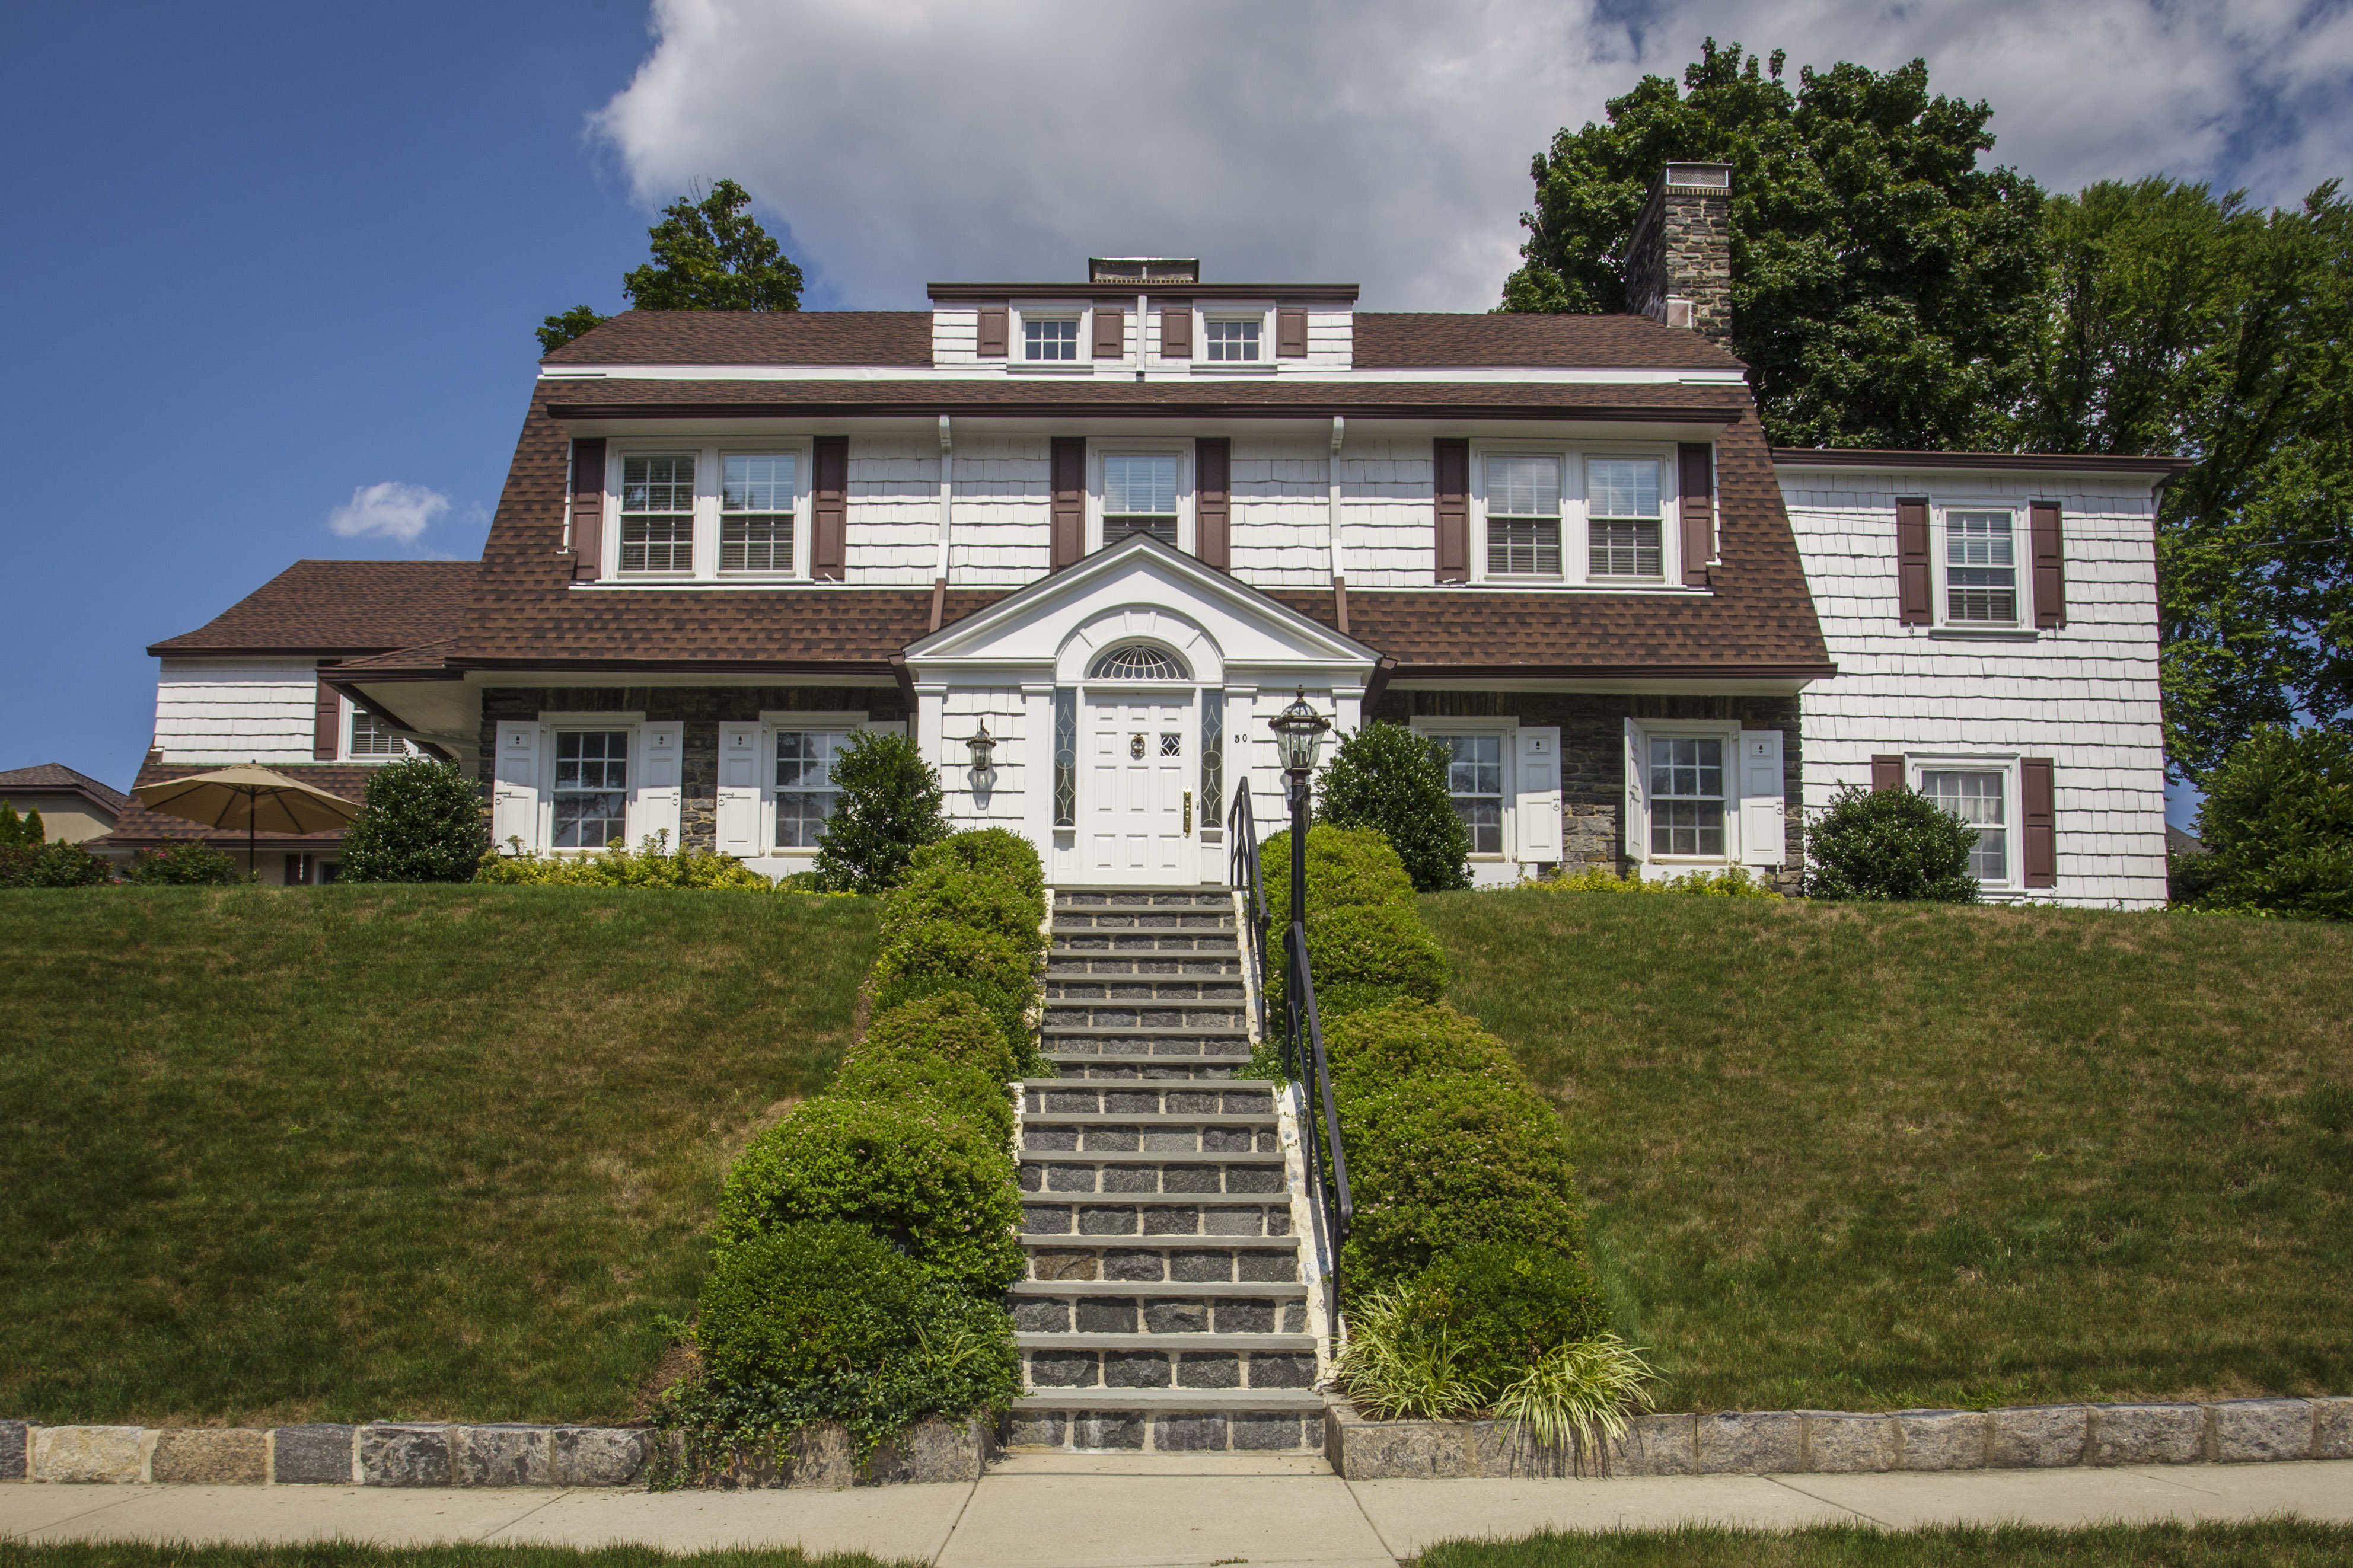 bronxville singles Get details of 6 west plateau circle your dream home in bronxville, 10708 and view its photos, videos, amenities and local information.